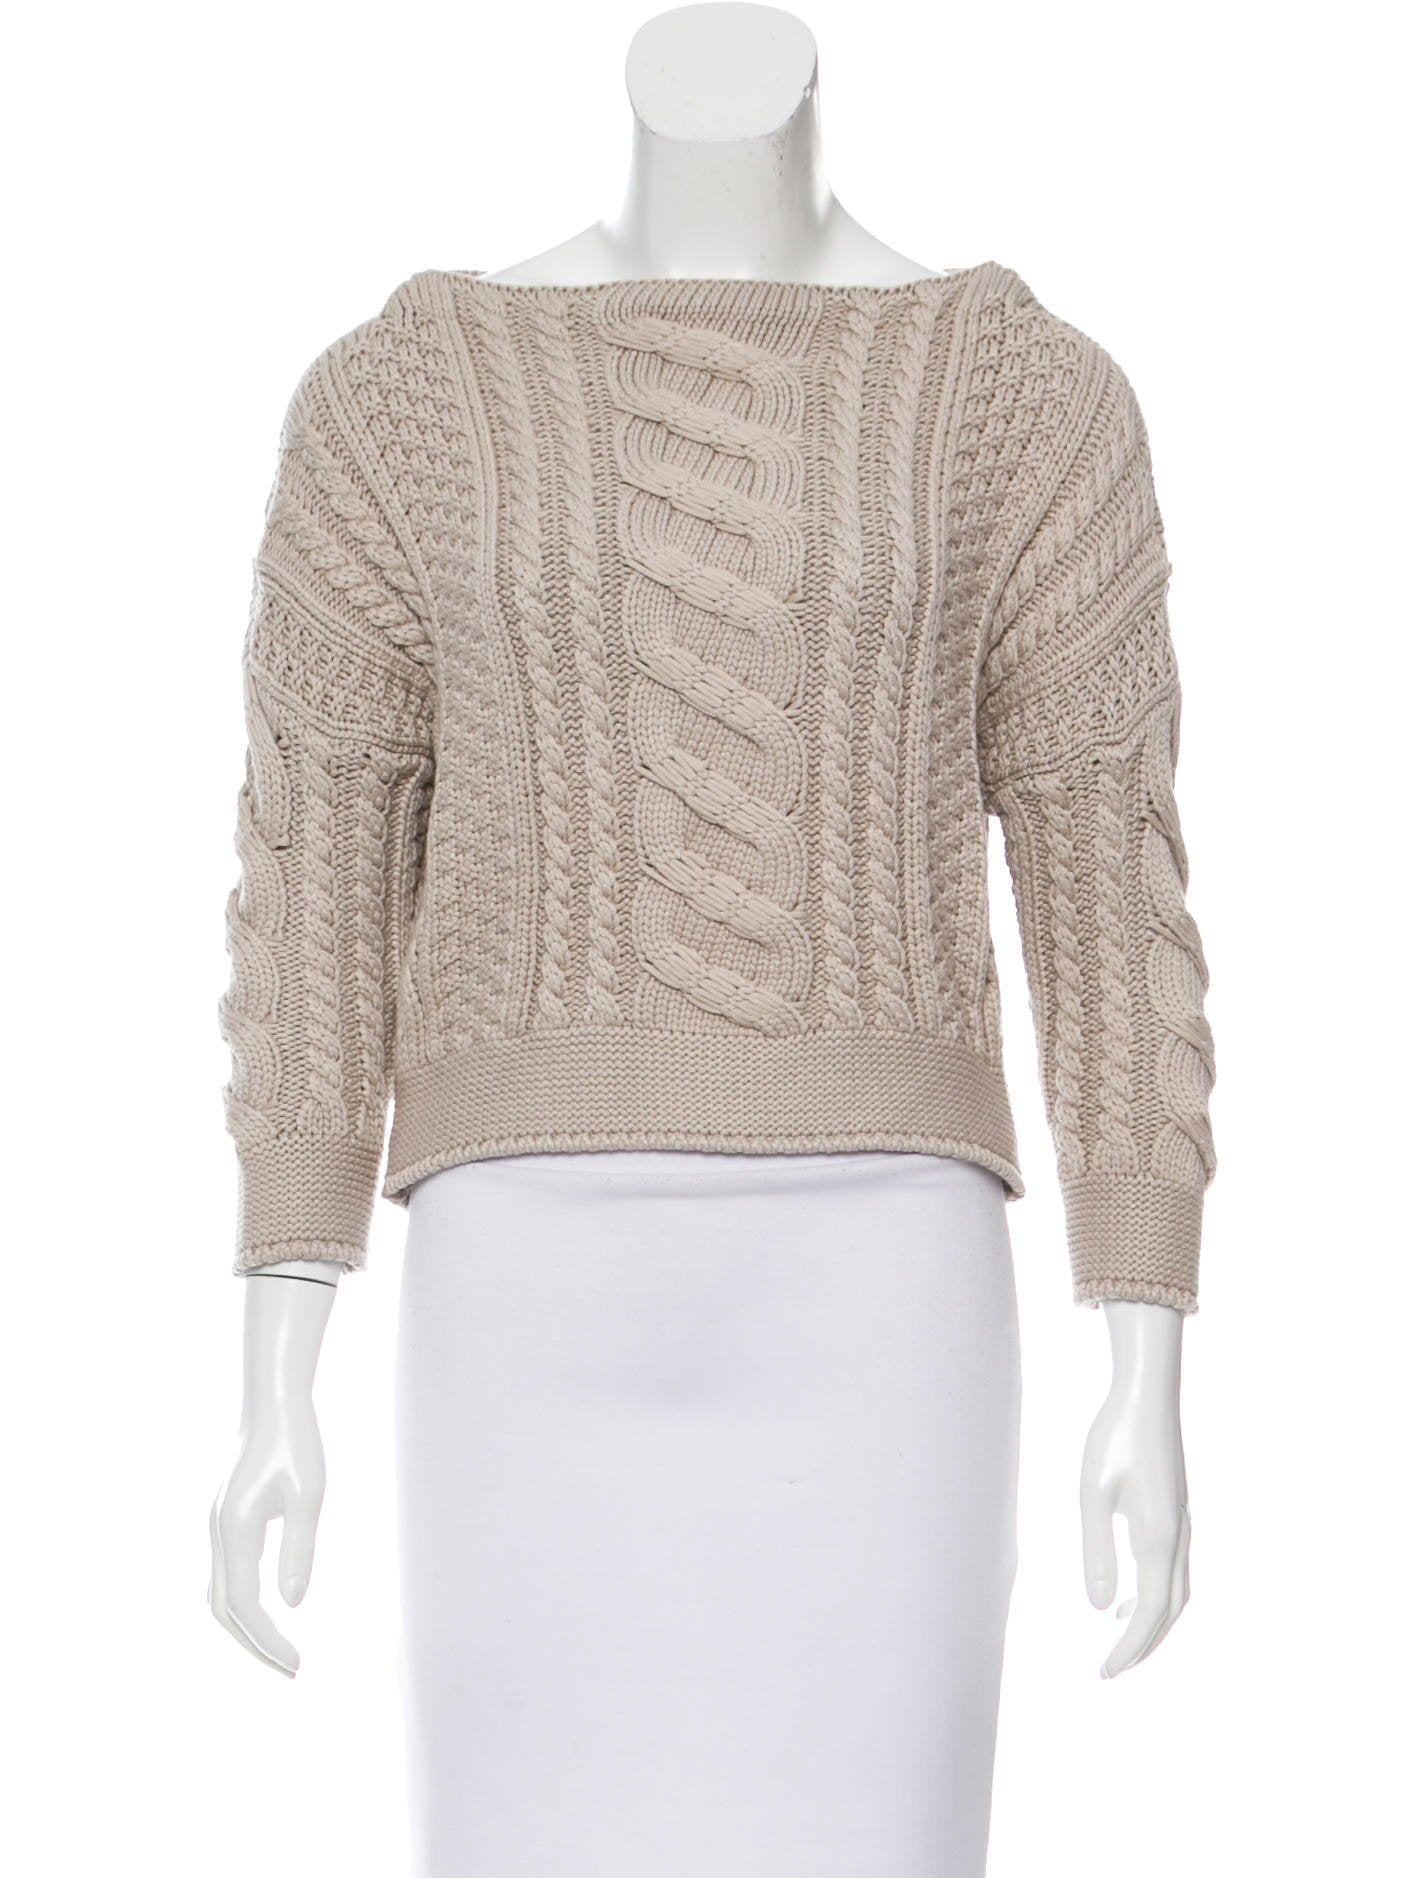 MaxMara Weekend Cropped Cable Knit Sweater - Clothing - WMX20163 ...